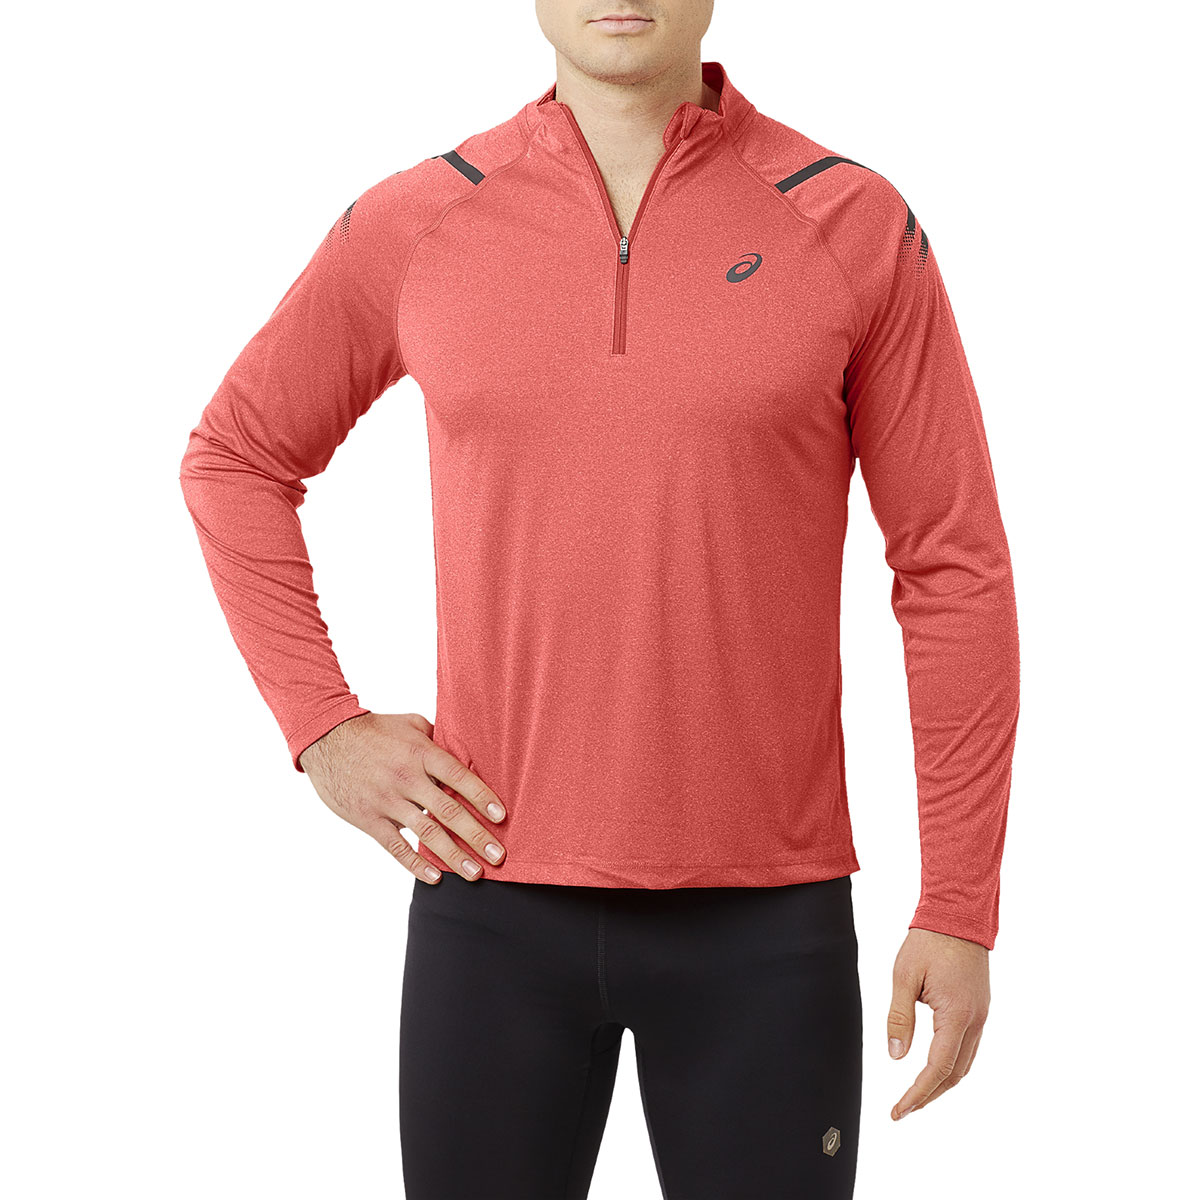 862926a4c2ce ASICS Icon Long Sleeve Half Zip - Running tops for Men - Purple